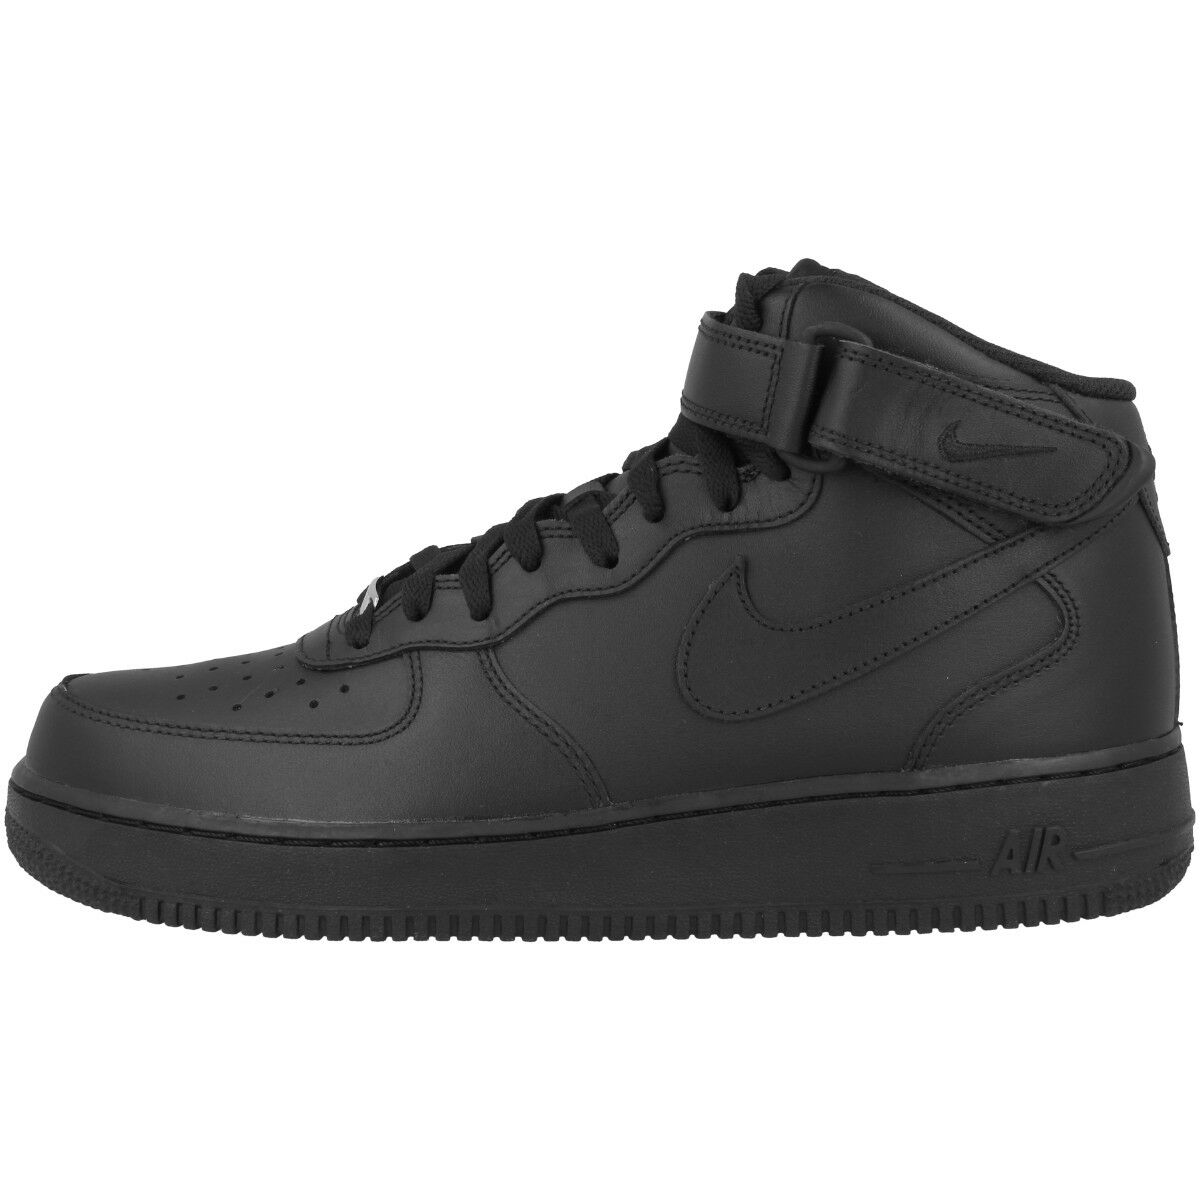 Nike Air Force 1'07 mid zapatos negro 315123-001 Dunk